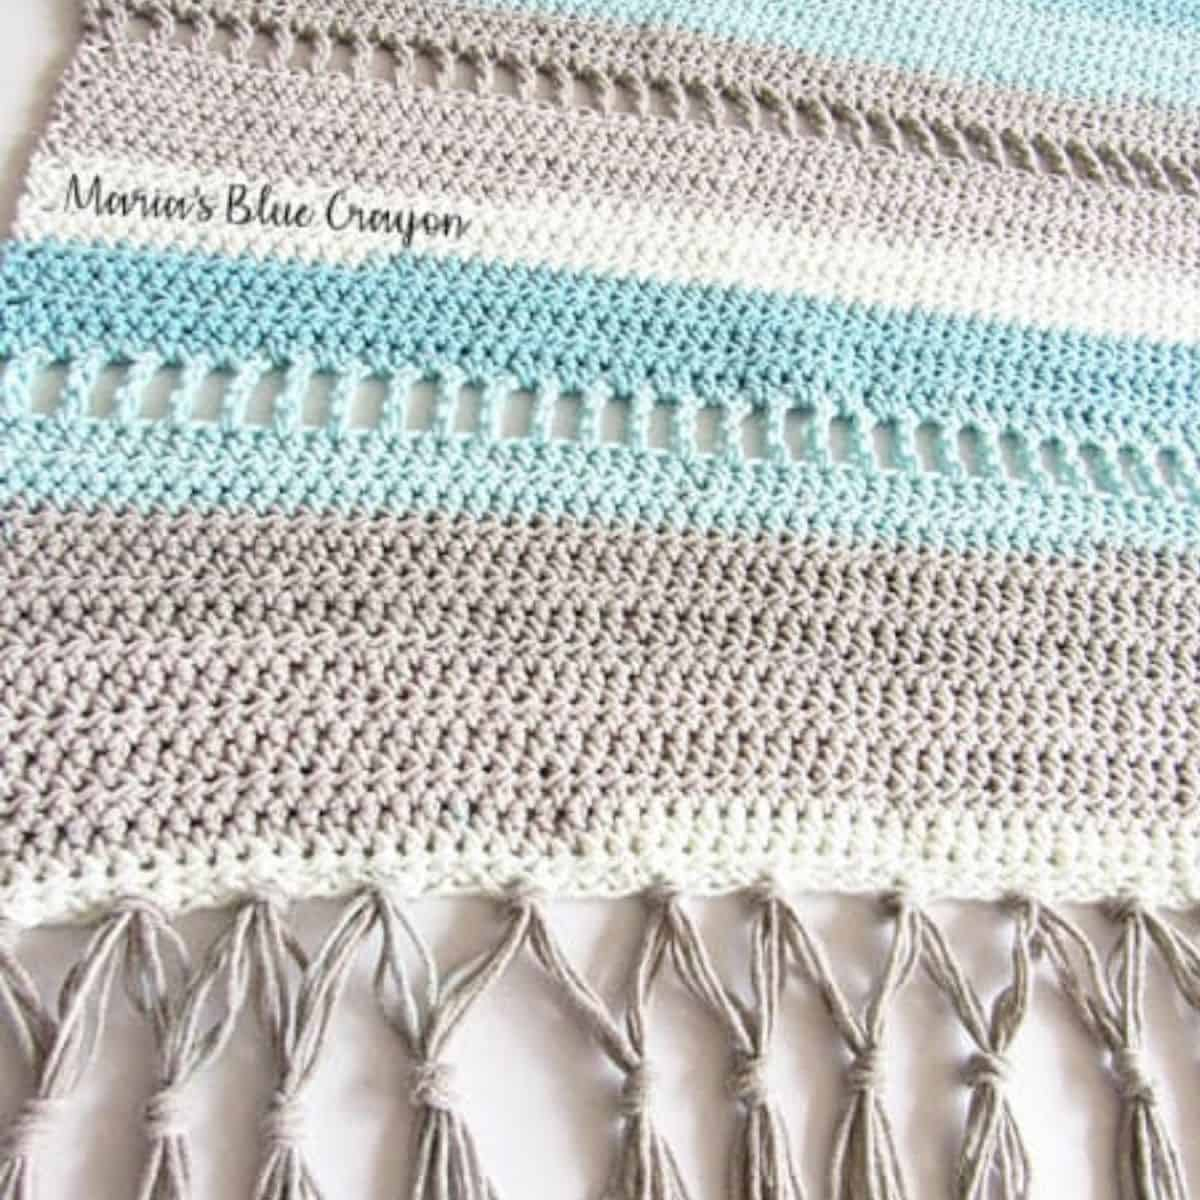 close up of gray, tan, light blue striped crochet rug with fringe